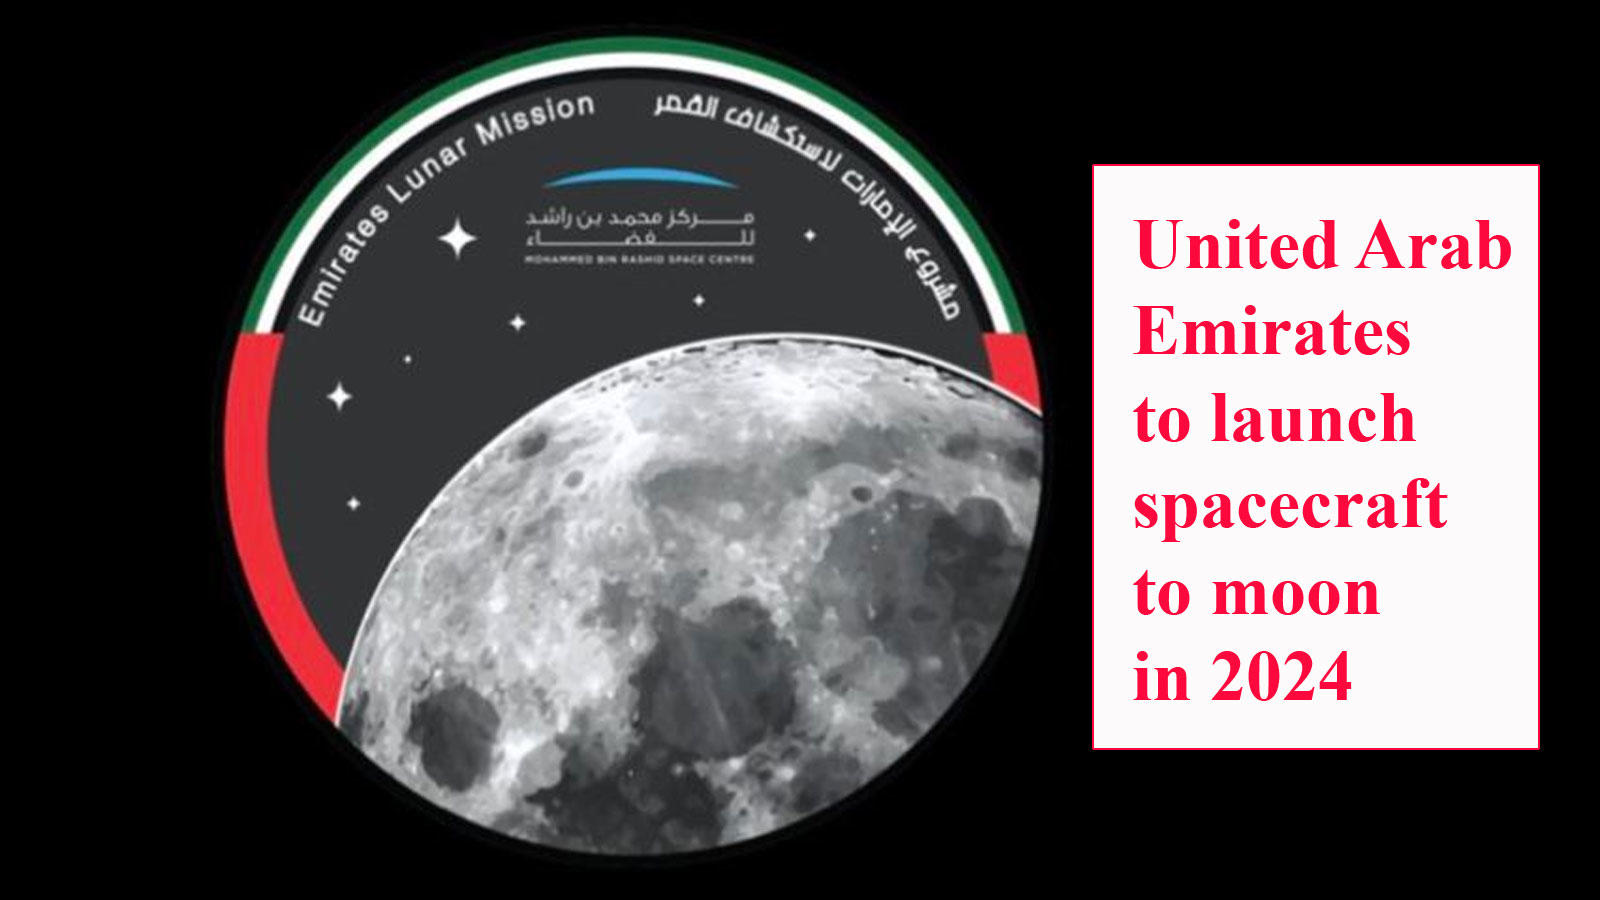 United Arab Emirates to launch spacecraft to moon in 2024 - Times of India